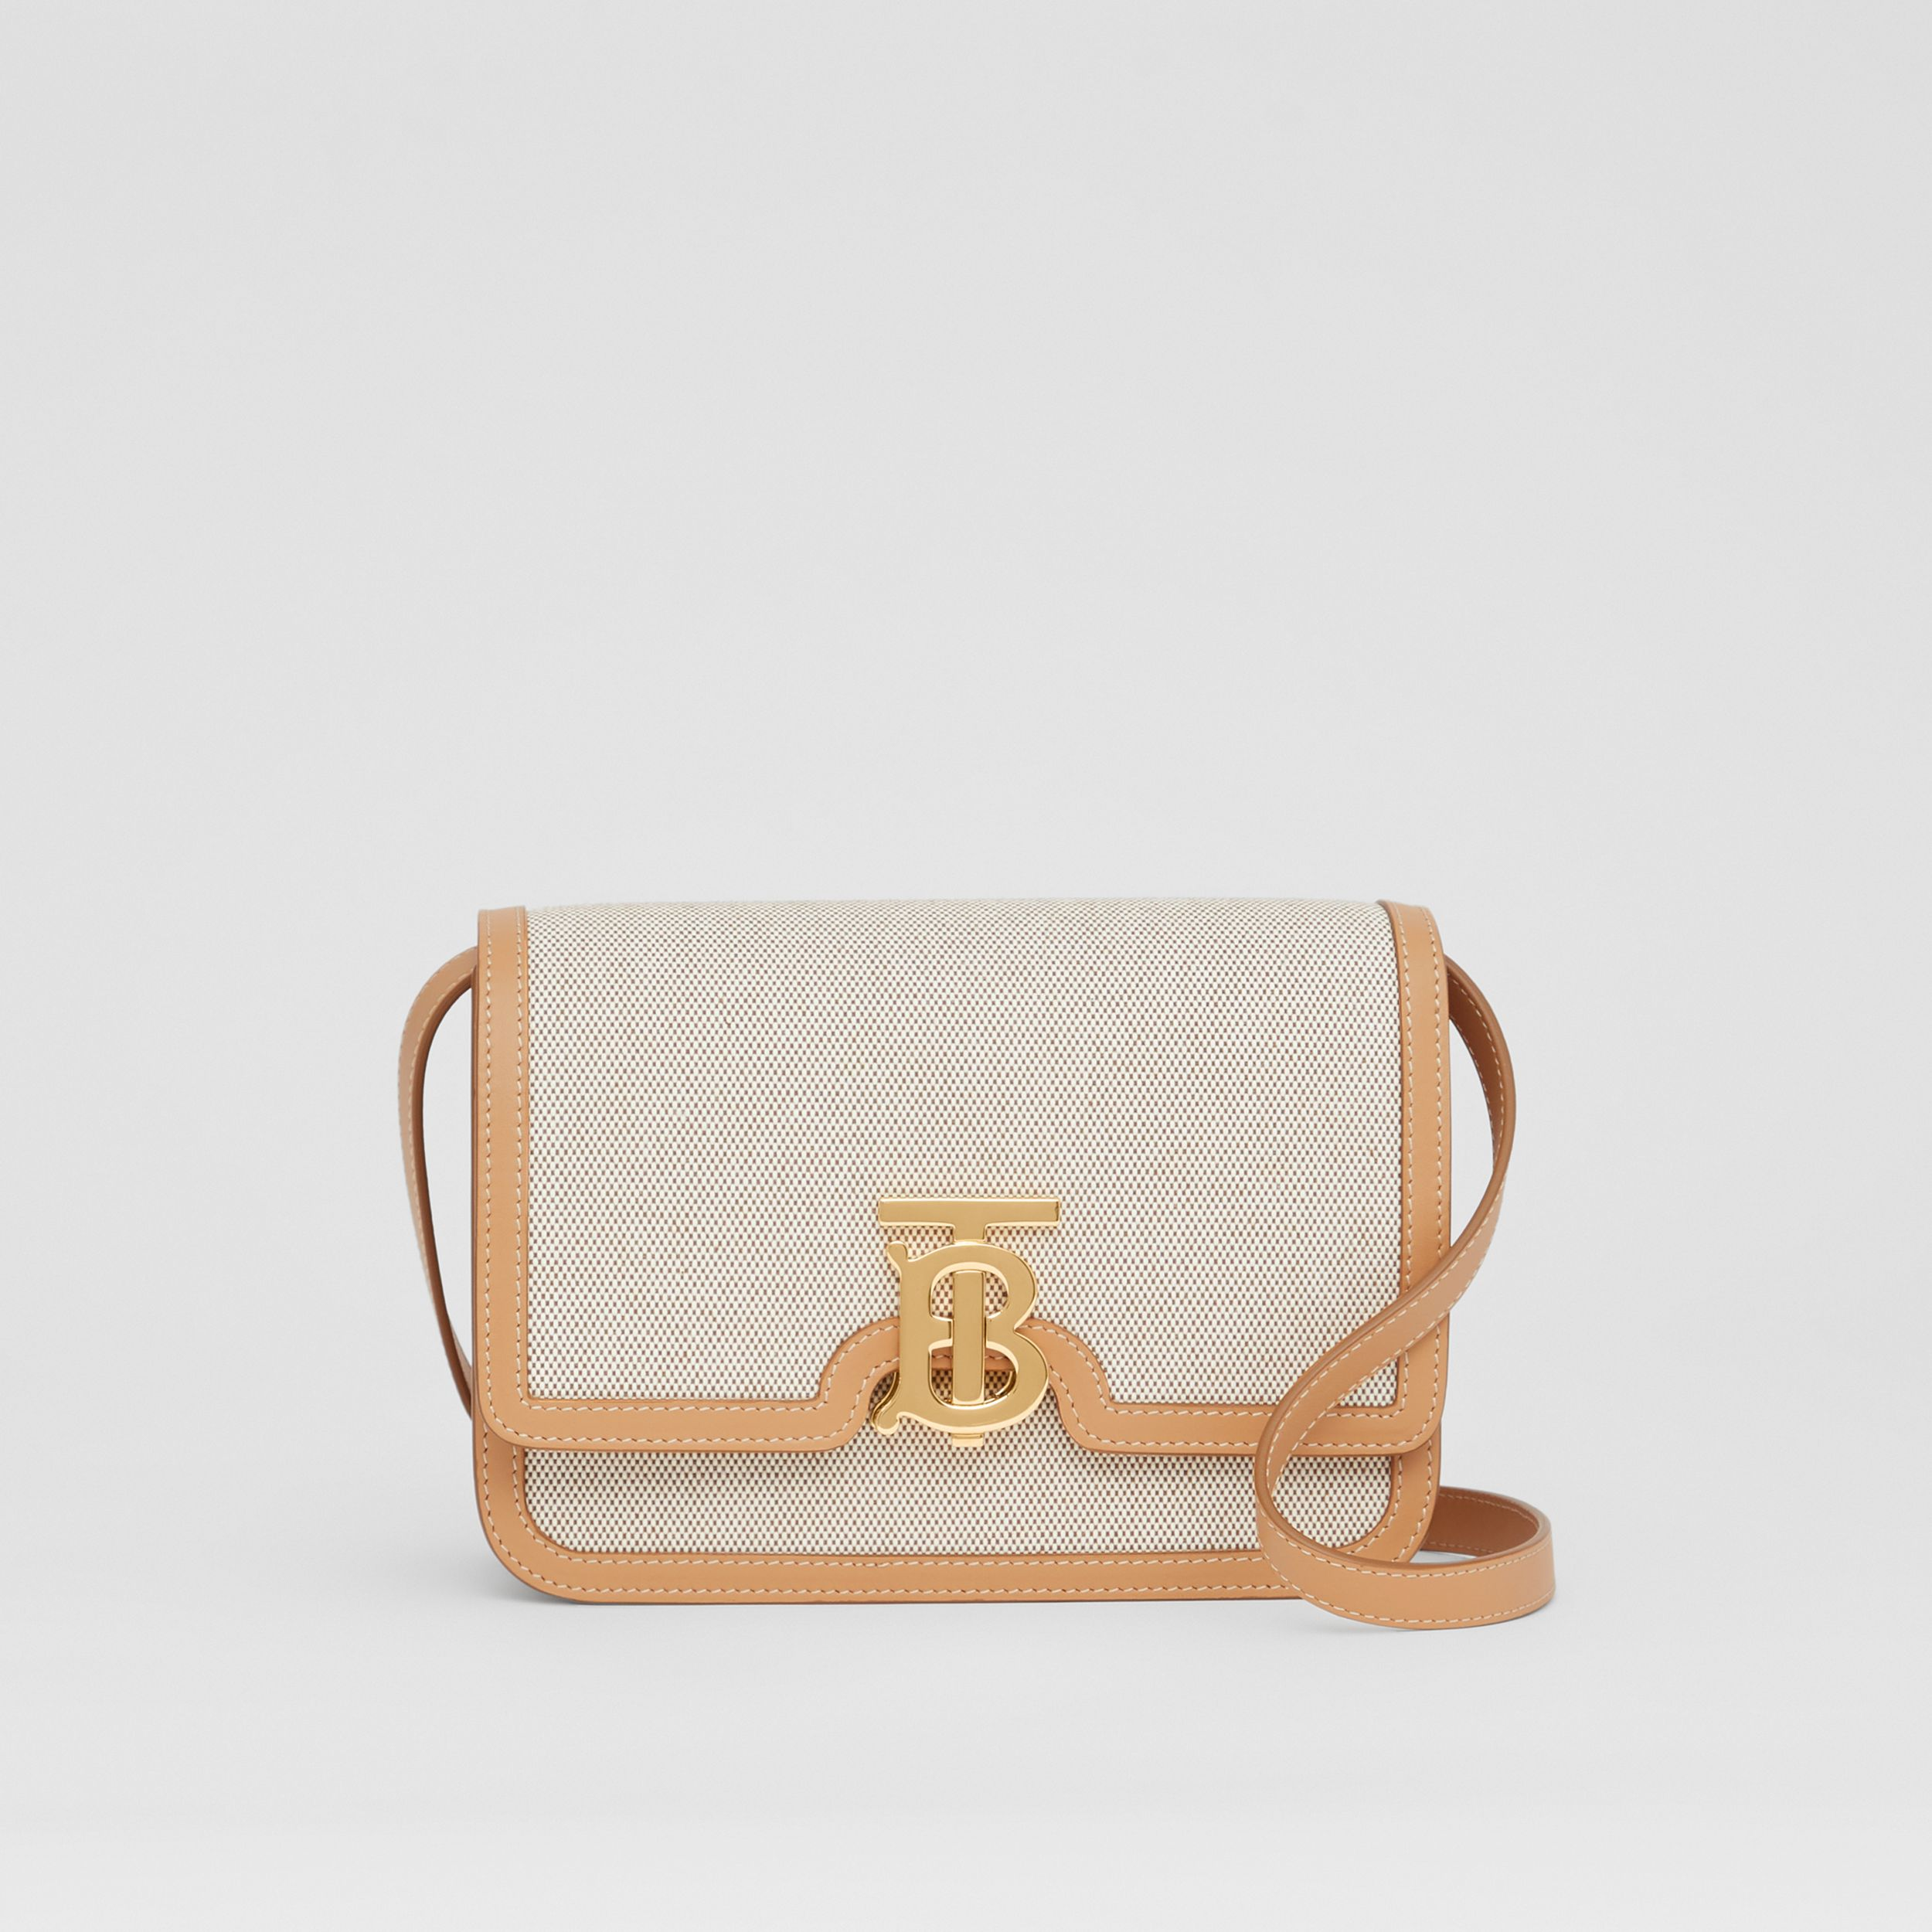 Small Two-tone Canvas and Leather TB Bag in Soft Fawn/warm Sand - Women | Burberry - 1